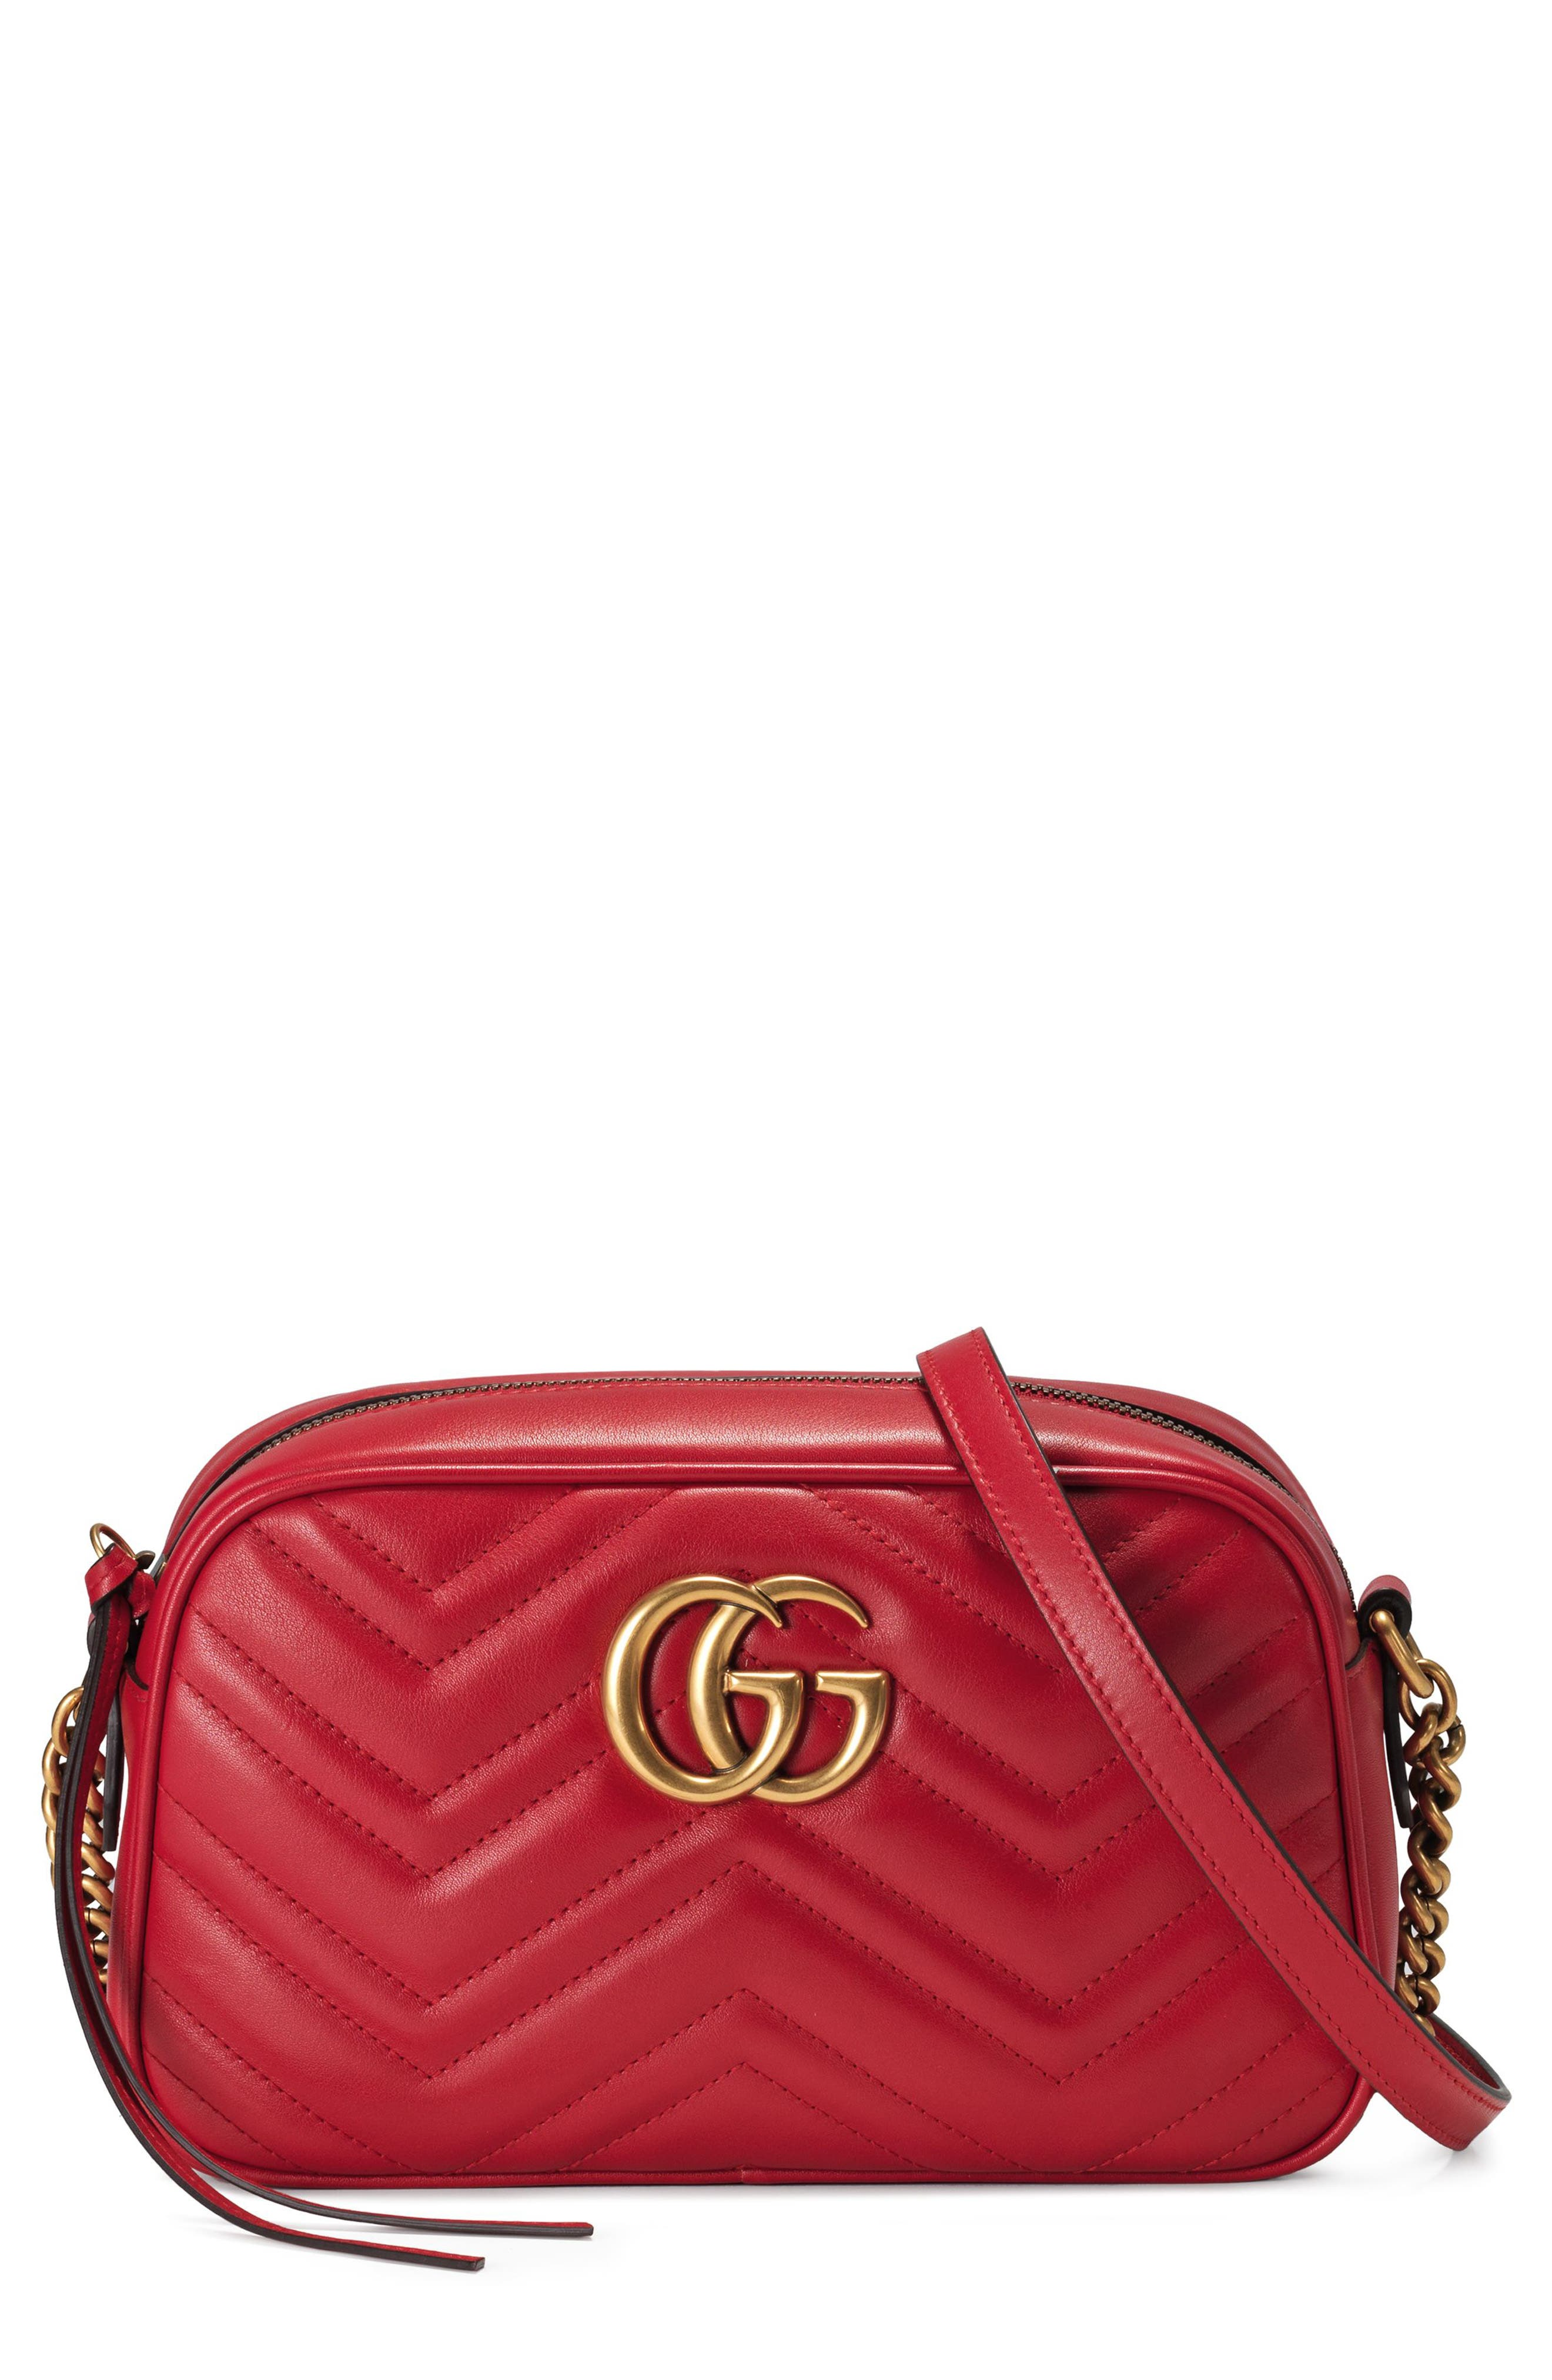 GUCCI,                             Small GG Marmont 2.0 Matelassé Leather Camera Bag,                             Main thumbnail 1, color,                             HIBISCUS RED/ HIBISCUS RED